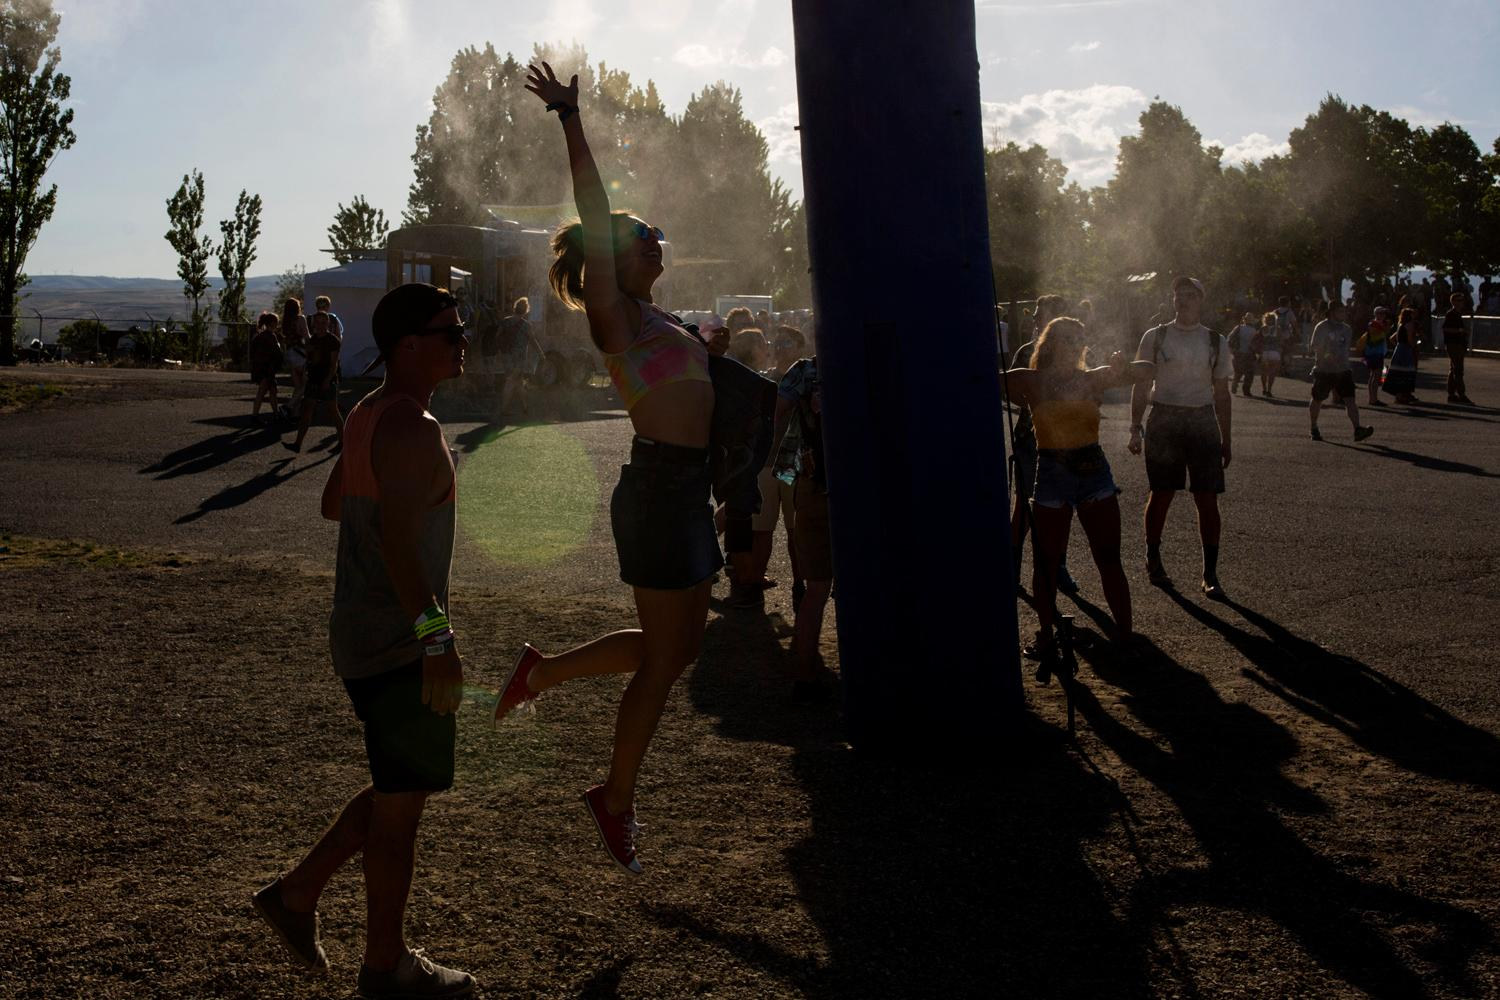 The third and final day of the annual Sasquatch! Music Festival closed with performances by The Nationals, Anderson Paak. & The Free Nationals, and Ray Lamontagne. See you next year Sasquatch! (Sy Bean / Seattle Refined)